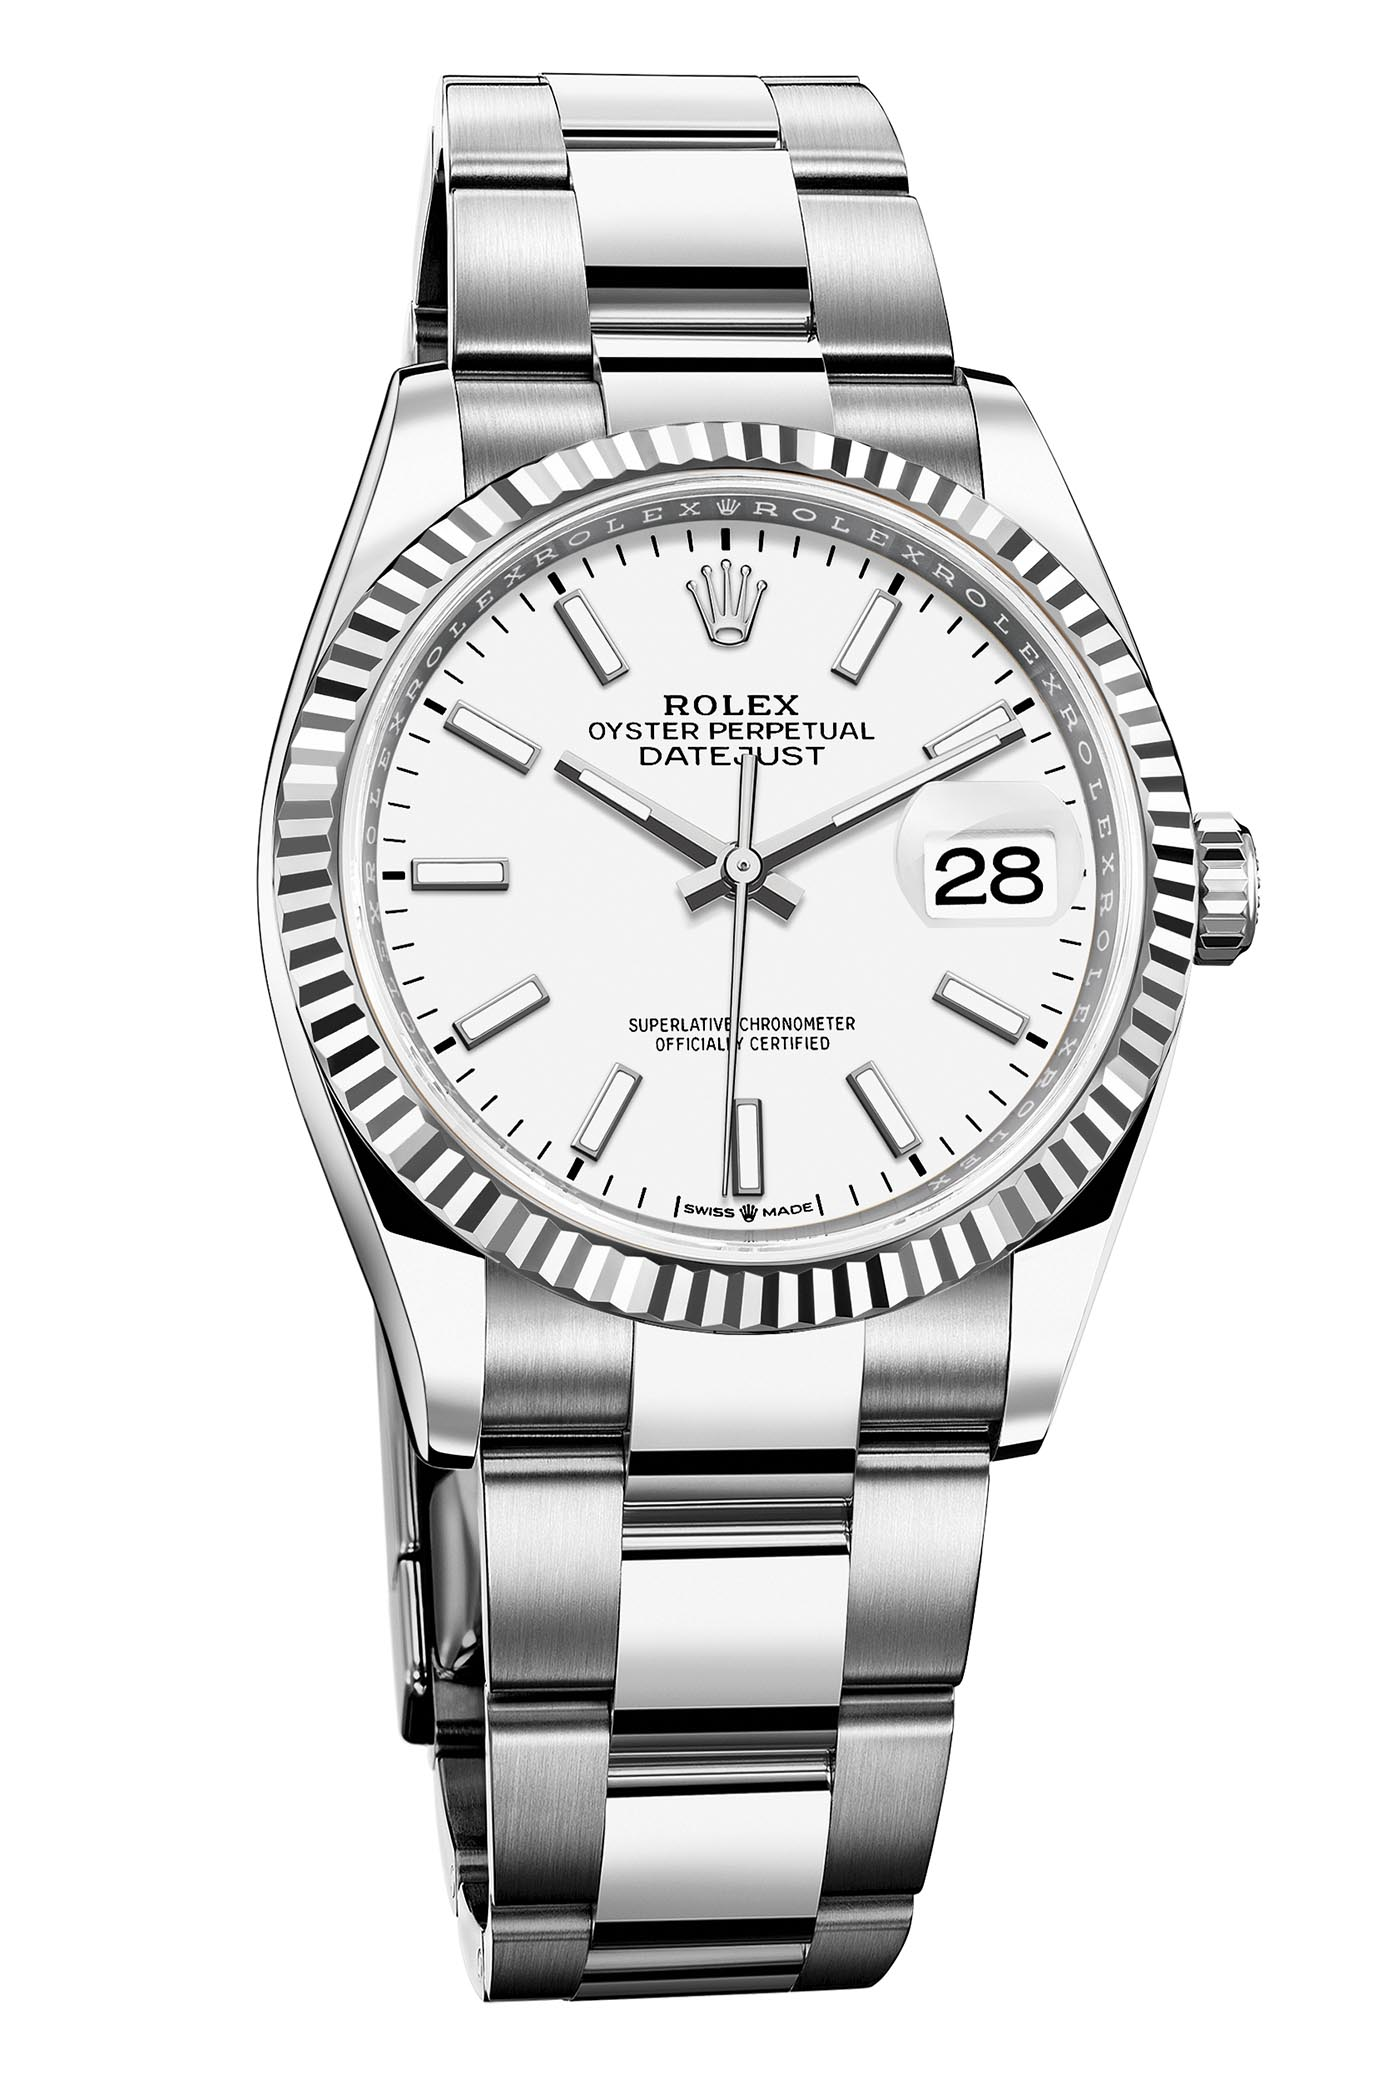 Rolex Datejust 36 Steel - Rolex Baselworld 2019 - Rolex 2019 Predictions